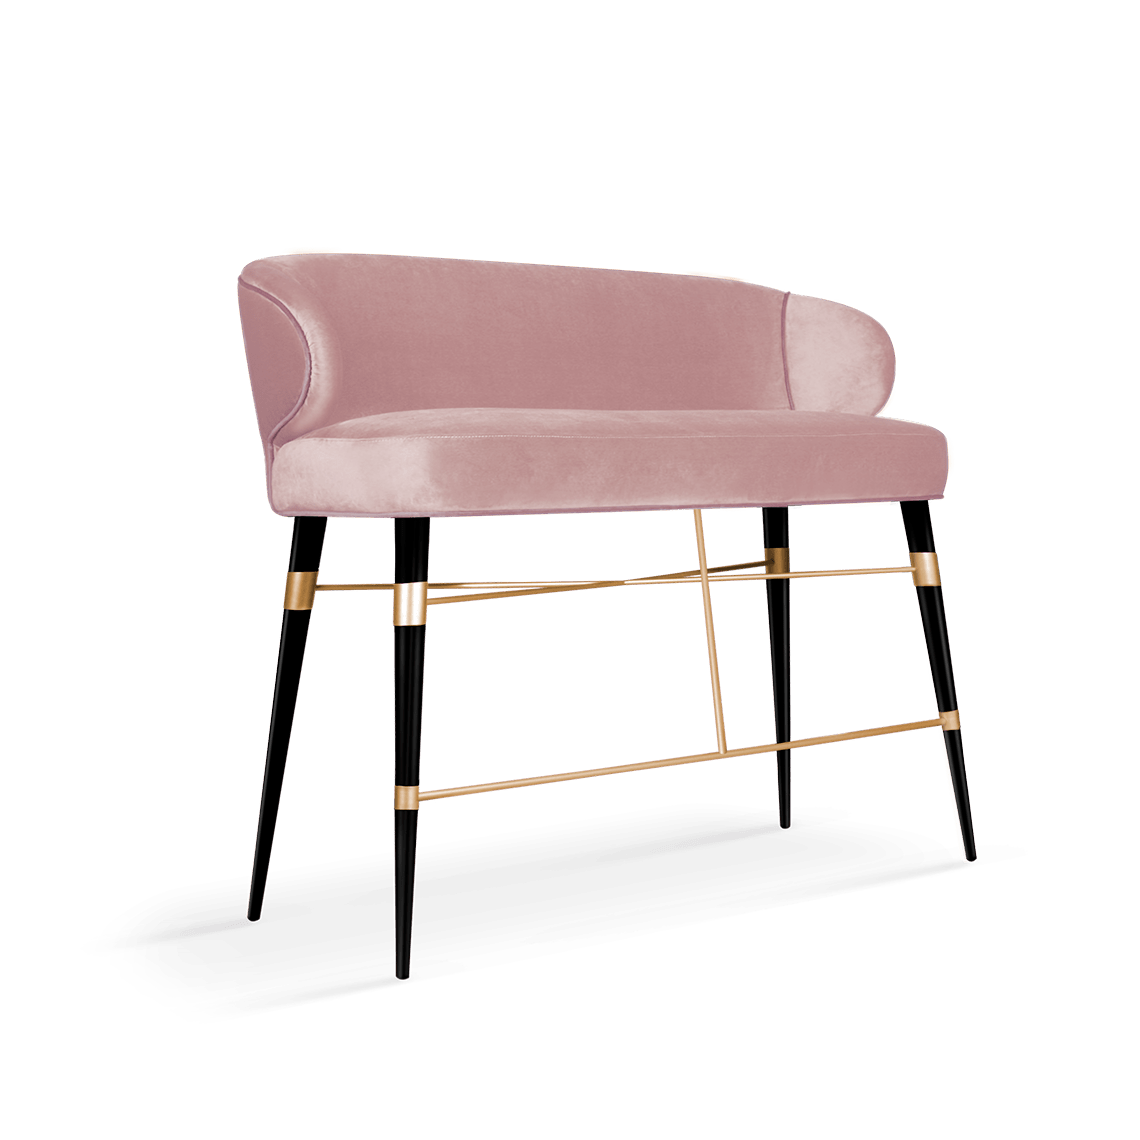 Louis Mid-Century Modern Twin Bar Chair in pink cotton velvet